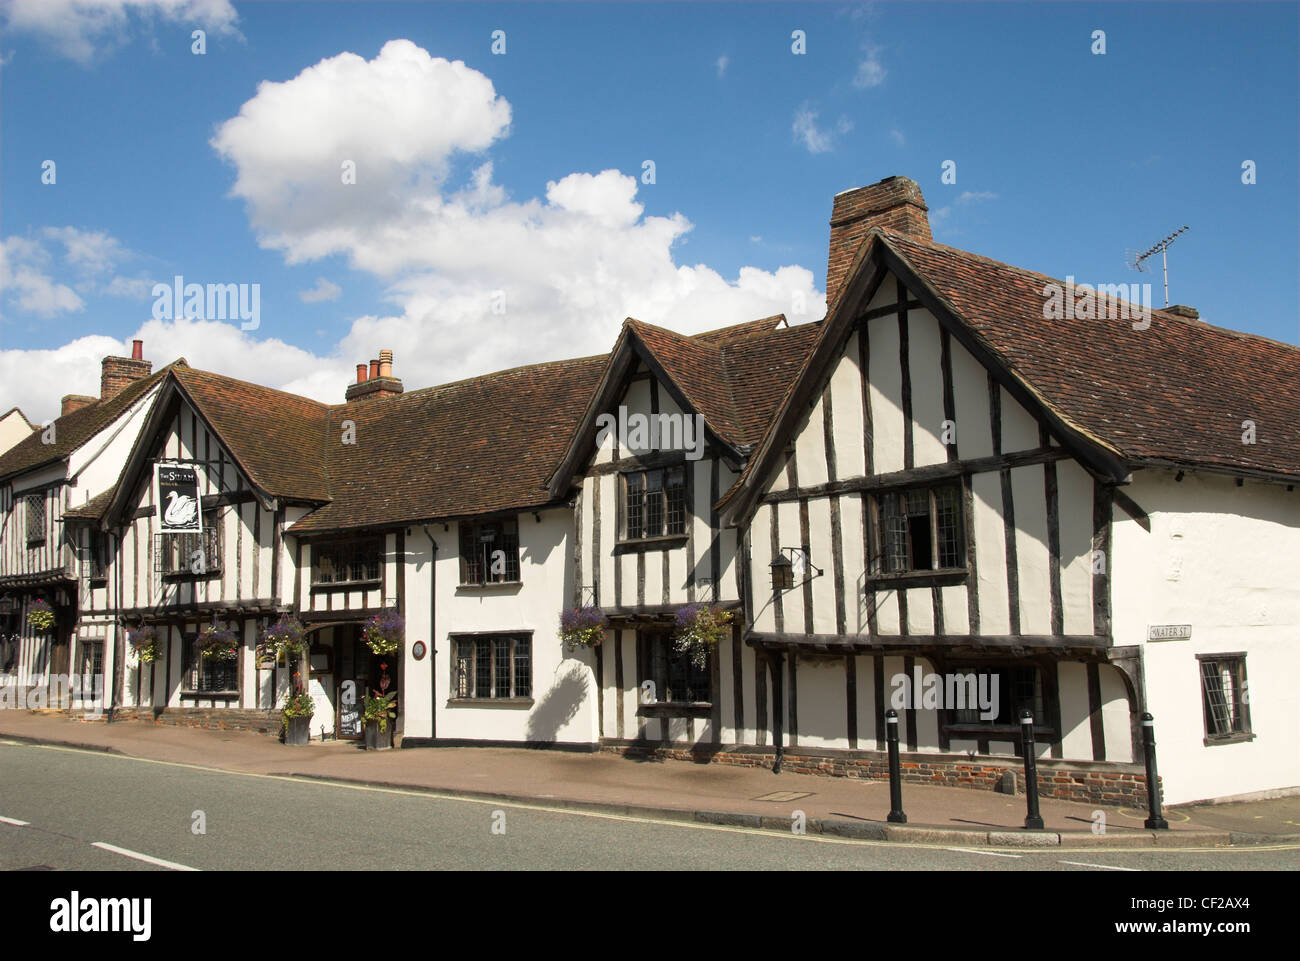 The Swan Hotel, an English country hotel in a half-timbered medieval building dating back to the 15th century. - Stock Image